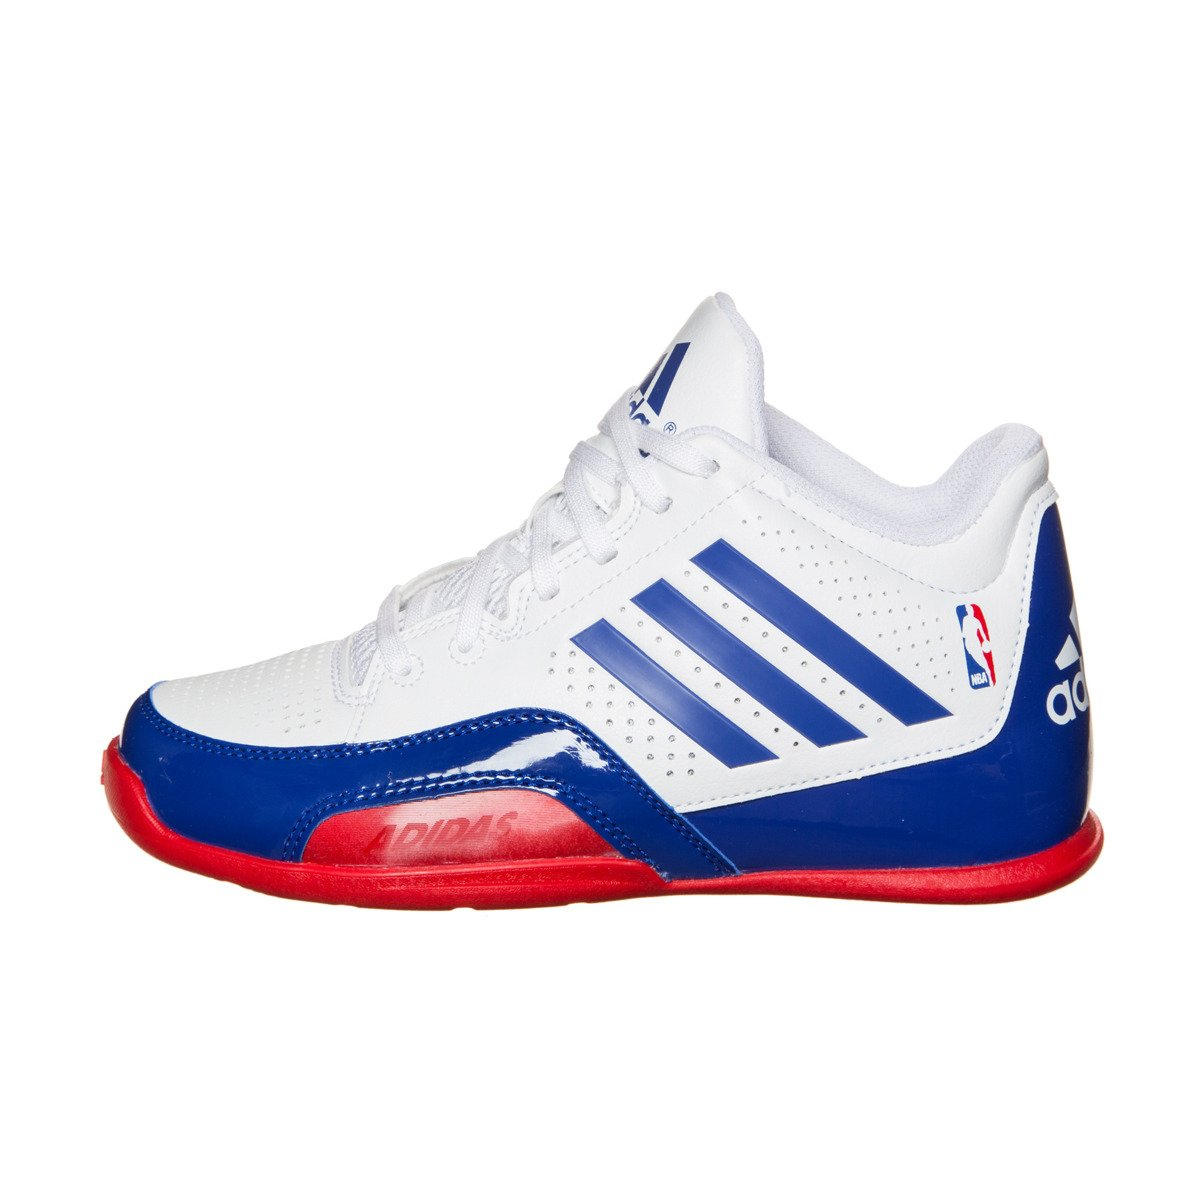 adidas 3 series 2015 nba kids shoes d69655 basketball